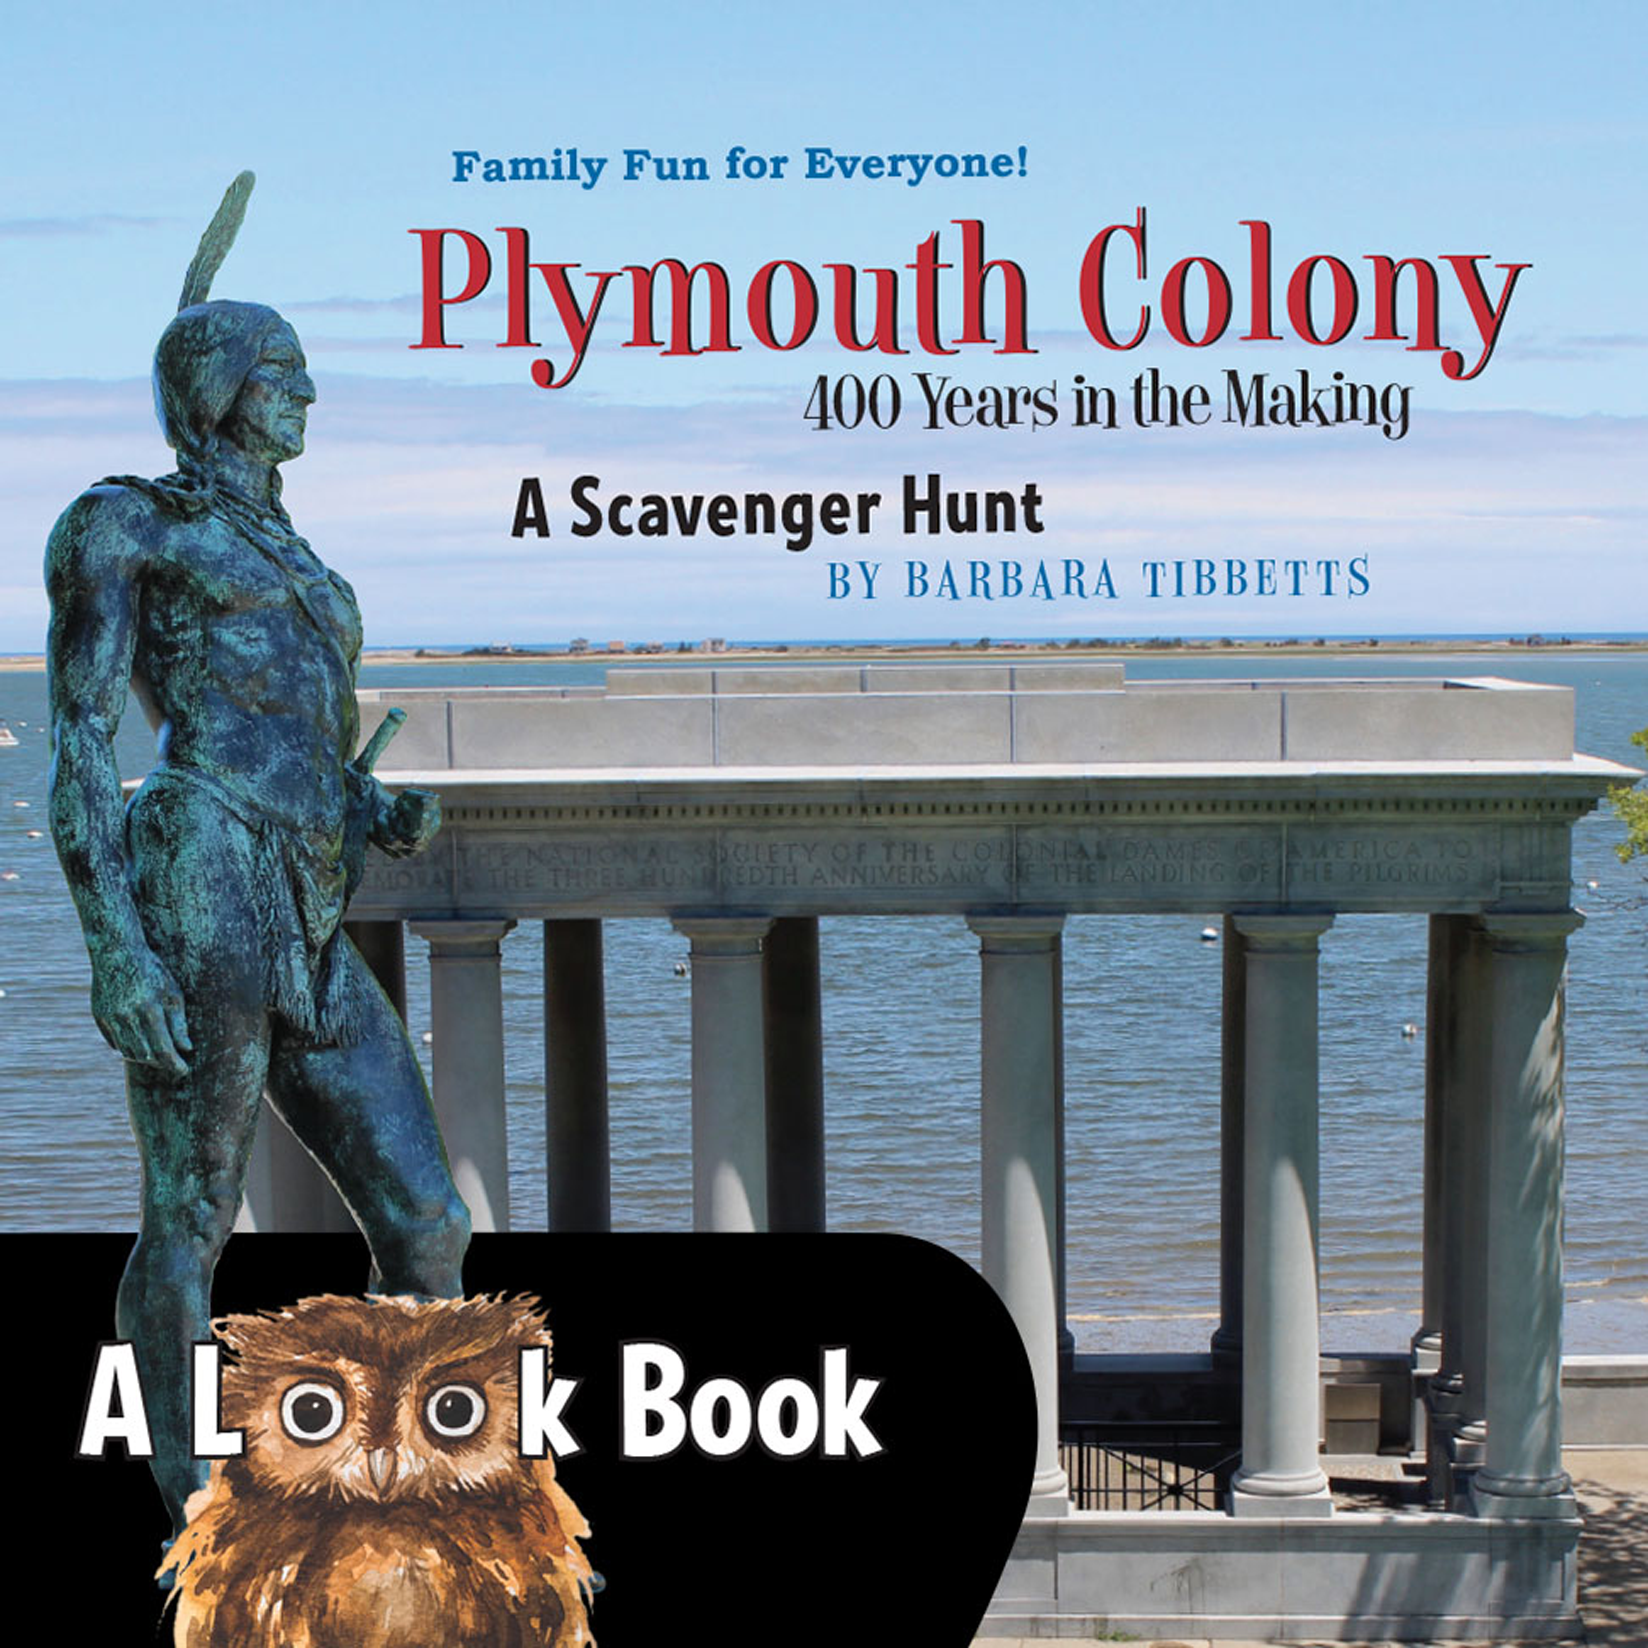 Plymouth Colony – 400 Years in the Making